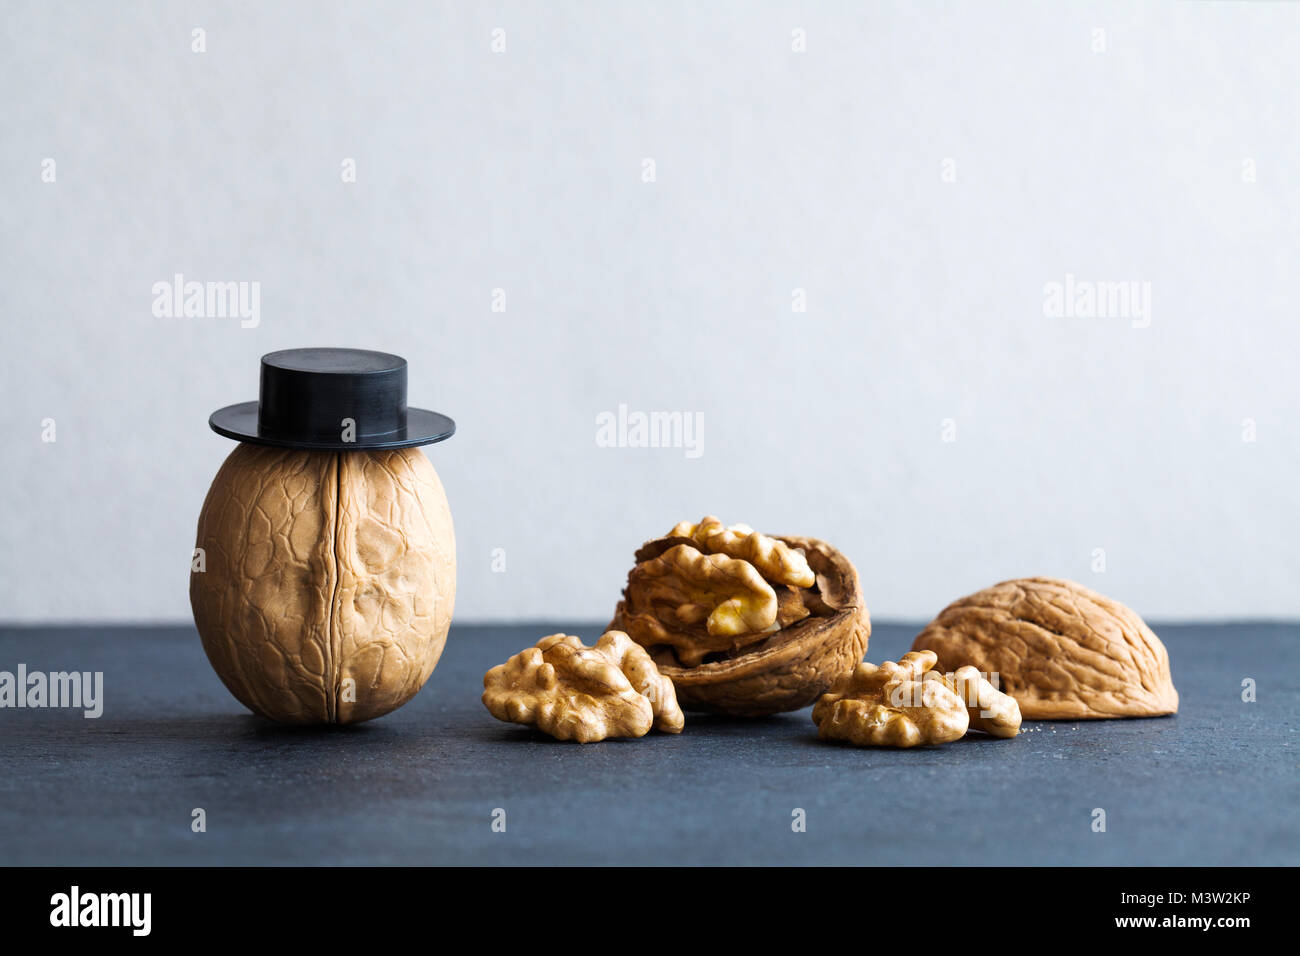 Senor walnuts black hats, half nutshell on stone and gray background. Creative food design poster. Macro view selective - Stock Image